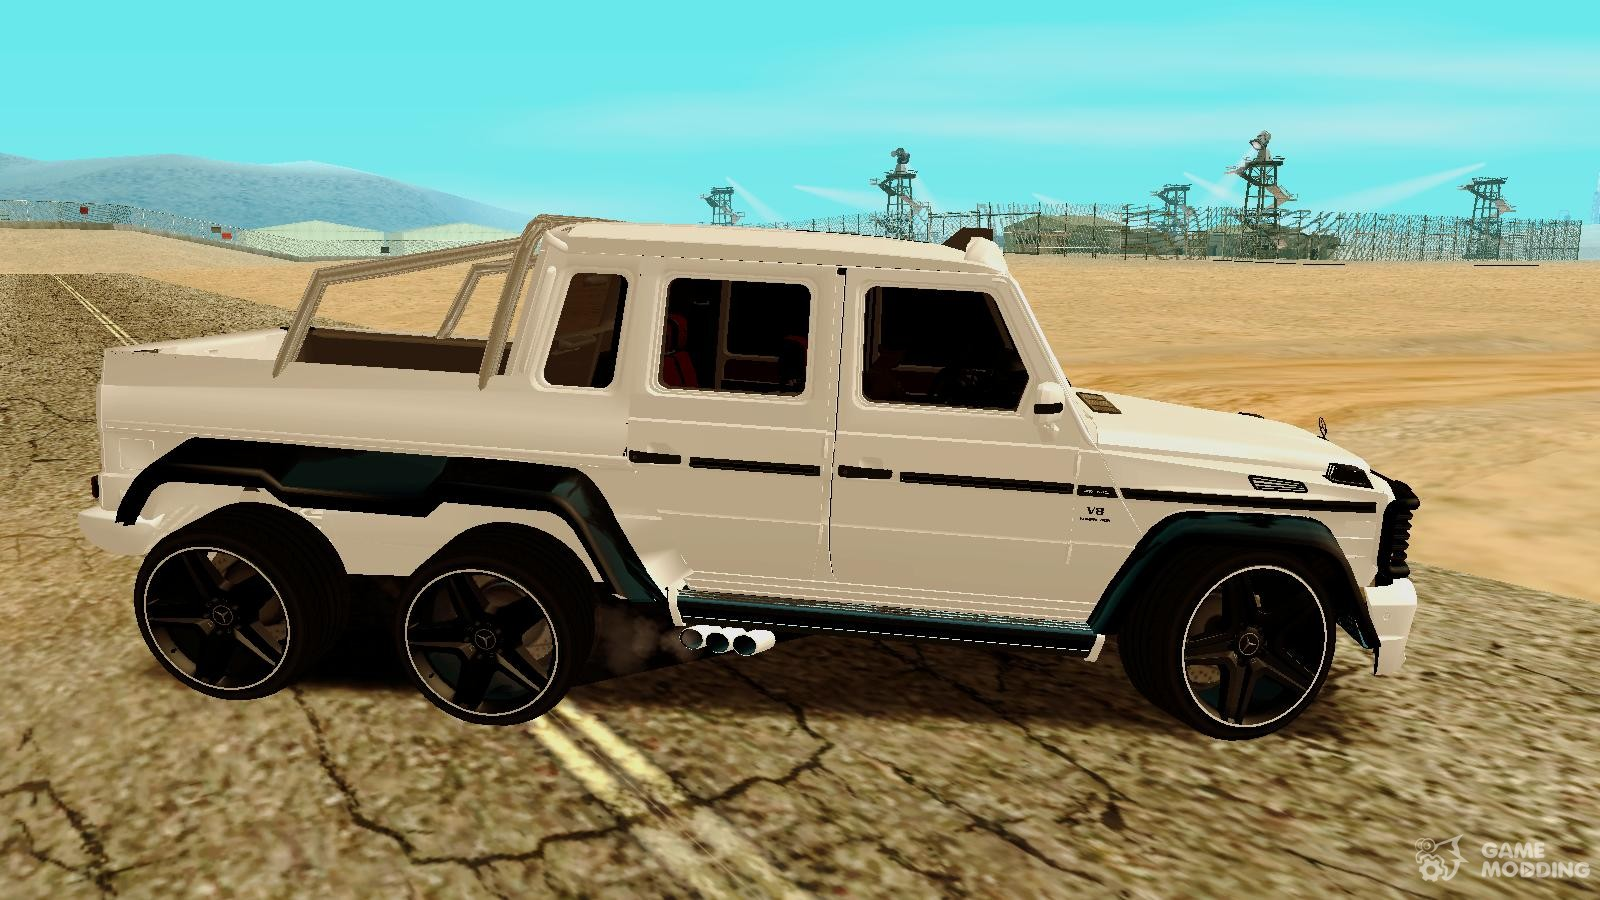 gta san andreas mercedes benz g65 amg with 42701 Mercedes Benz G 63 Amg 6x6 on 32906 Mercedes Benz G65 Amg Hamann besides 47496 Mercedes Benz G65 Amg in addition 22169 Mercedes Benz G500 Limousine in addition 59640 Mercedes Benz G65 Amg Carbon Edition also 24154 Mercedes Benz G65 Amg 2013.